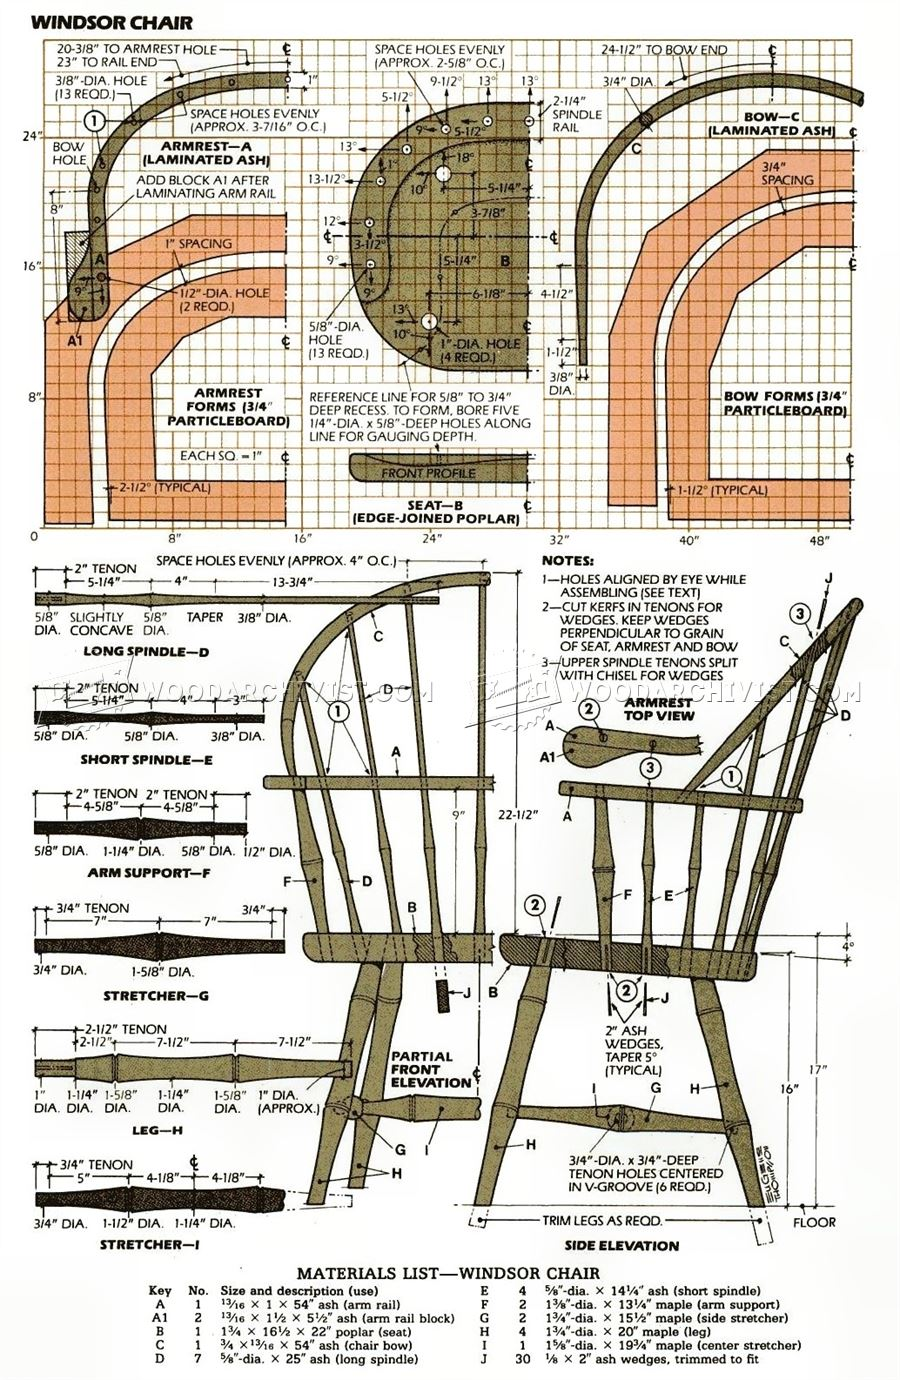 woven dining chairs jake and the neverland pirates chair classiс windsor plans • woodarchivist